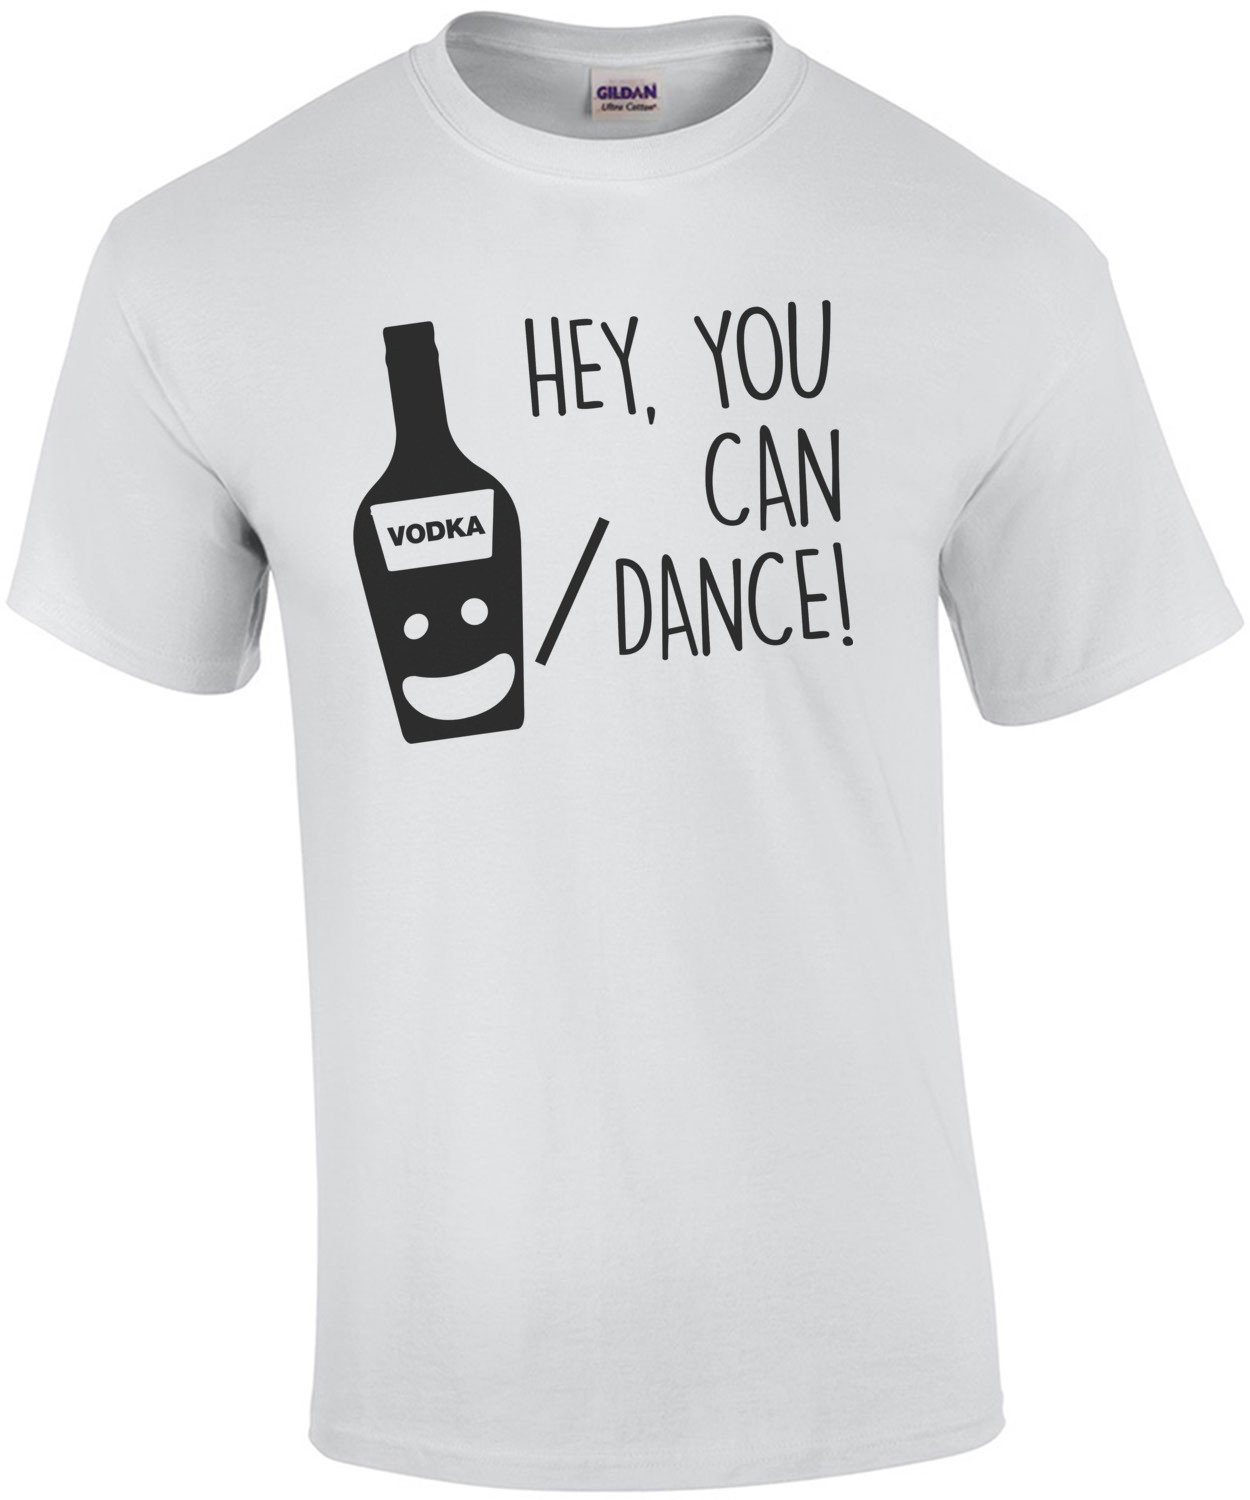 You're a great dancer - Vodka -